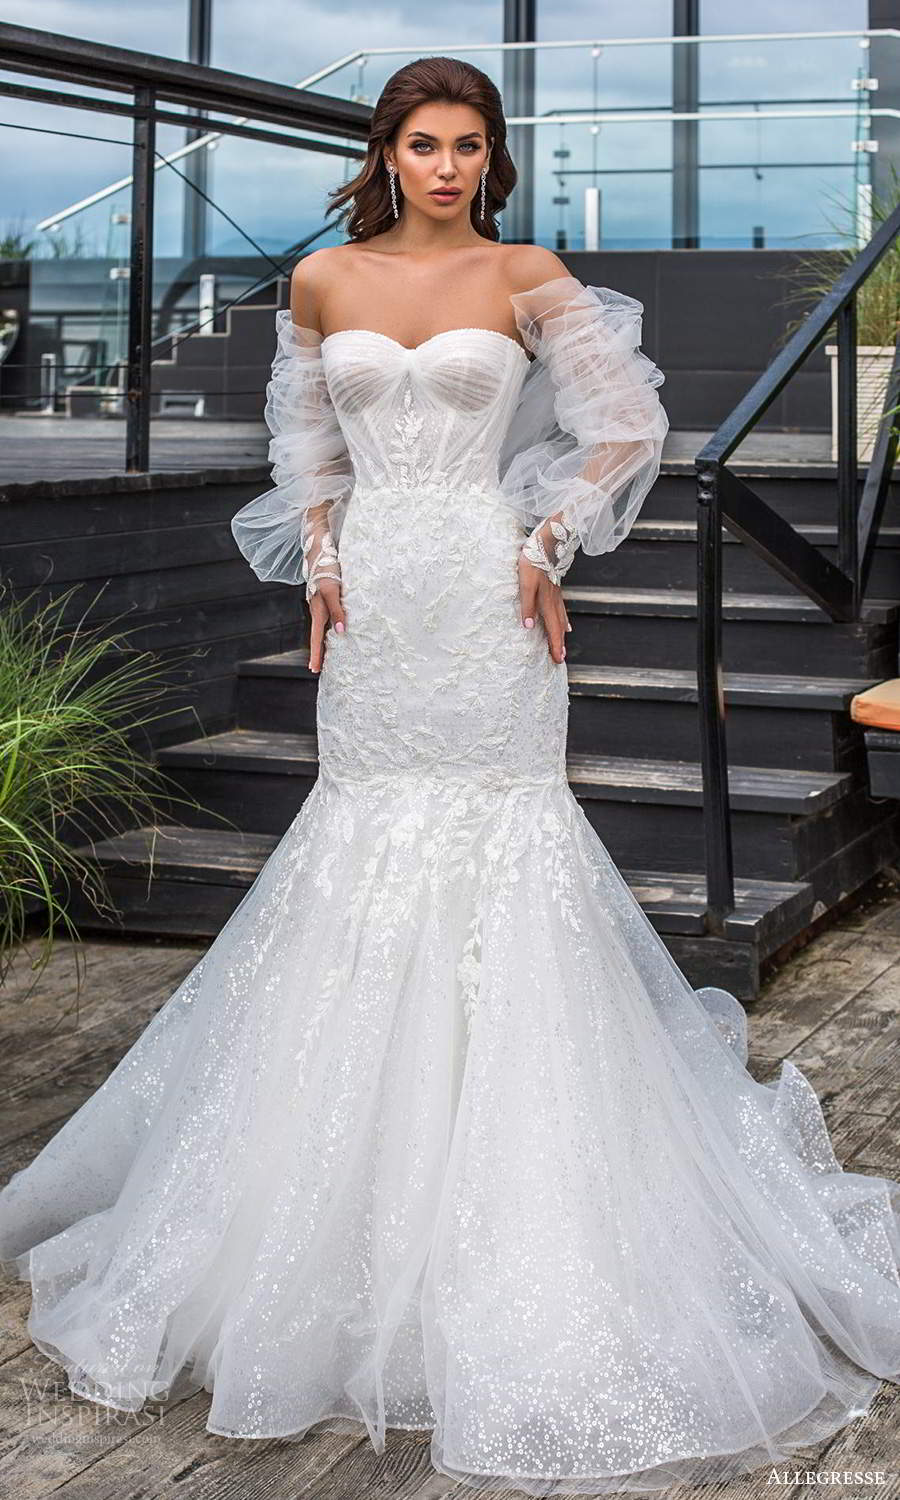 allegresse 2021 bridal detached bishop sleeves strapless sweetheart neckline fully embellished fit flare wedding dress chapel train (4) mv